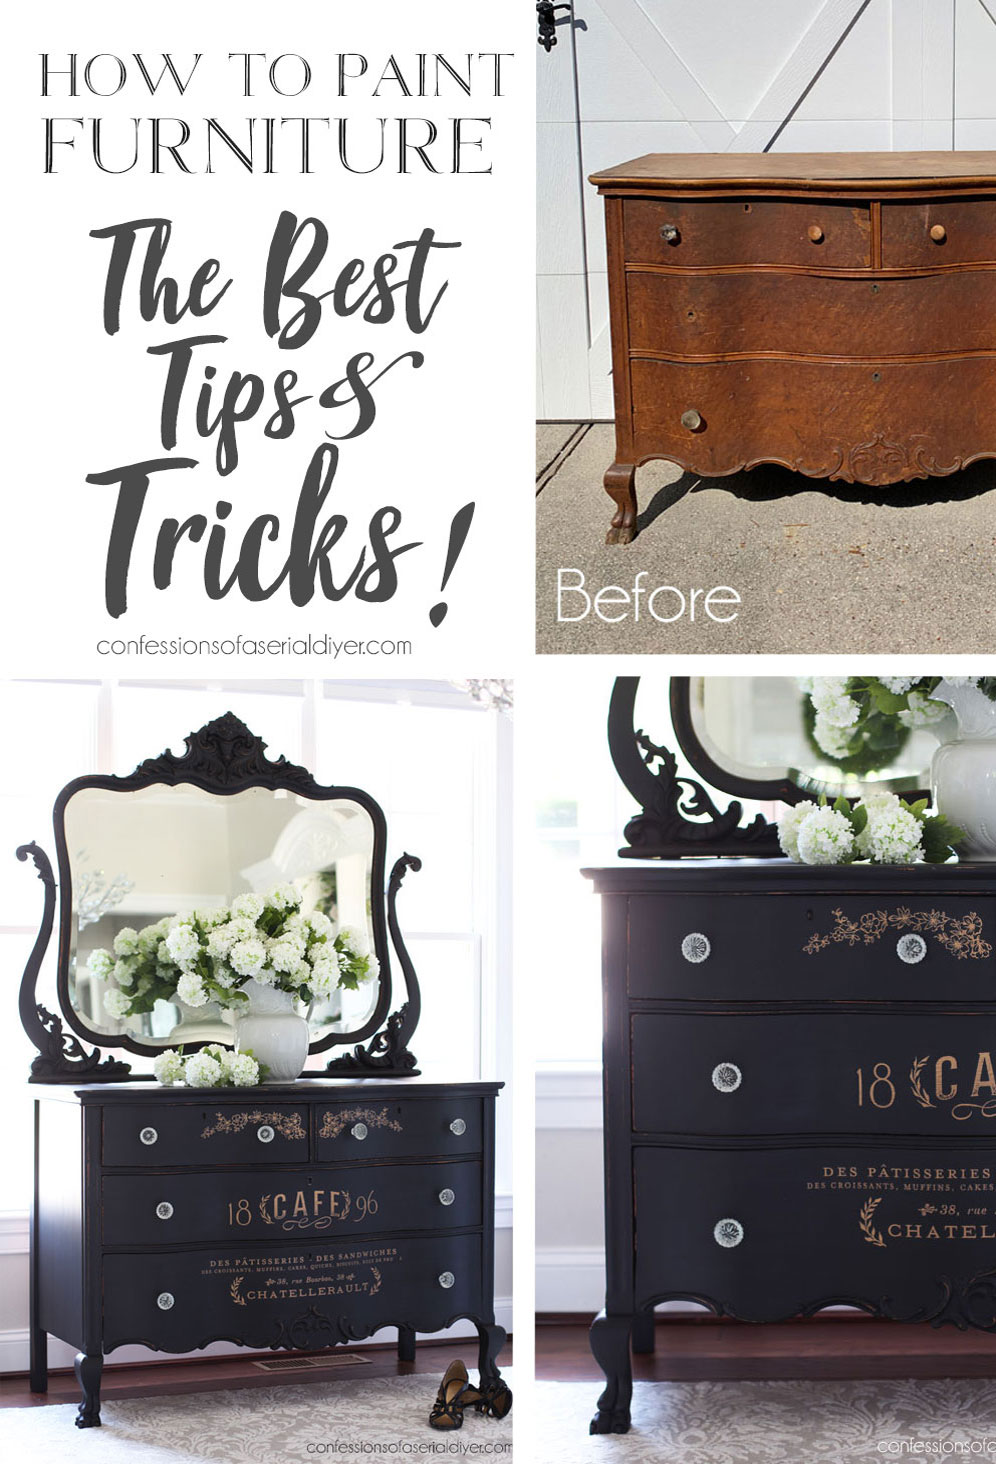 How to Paint Furniture for a flawless finish (The Best Tips & Tricks)